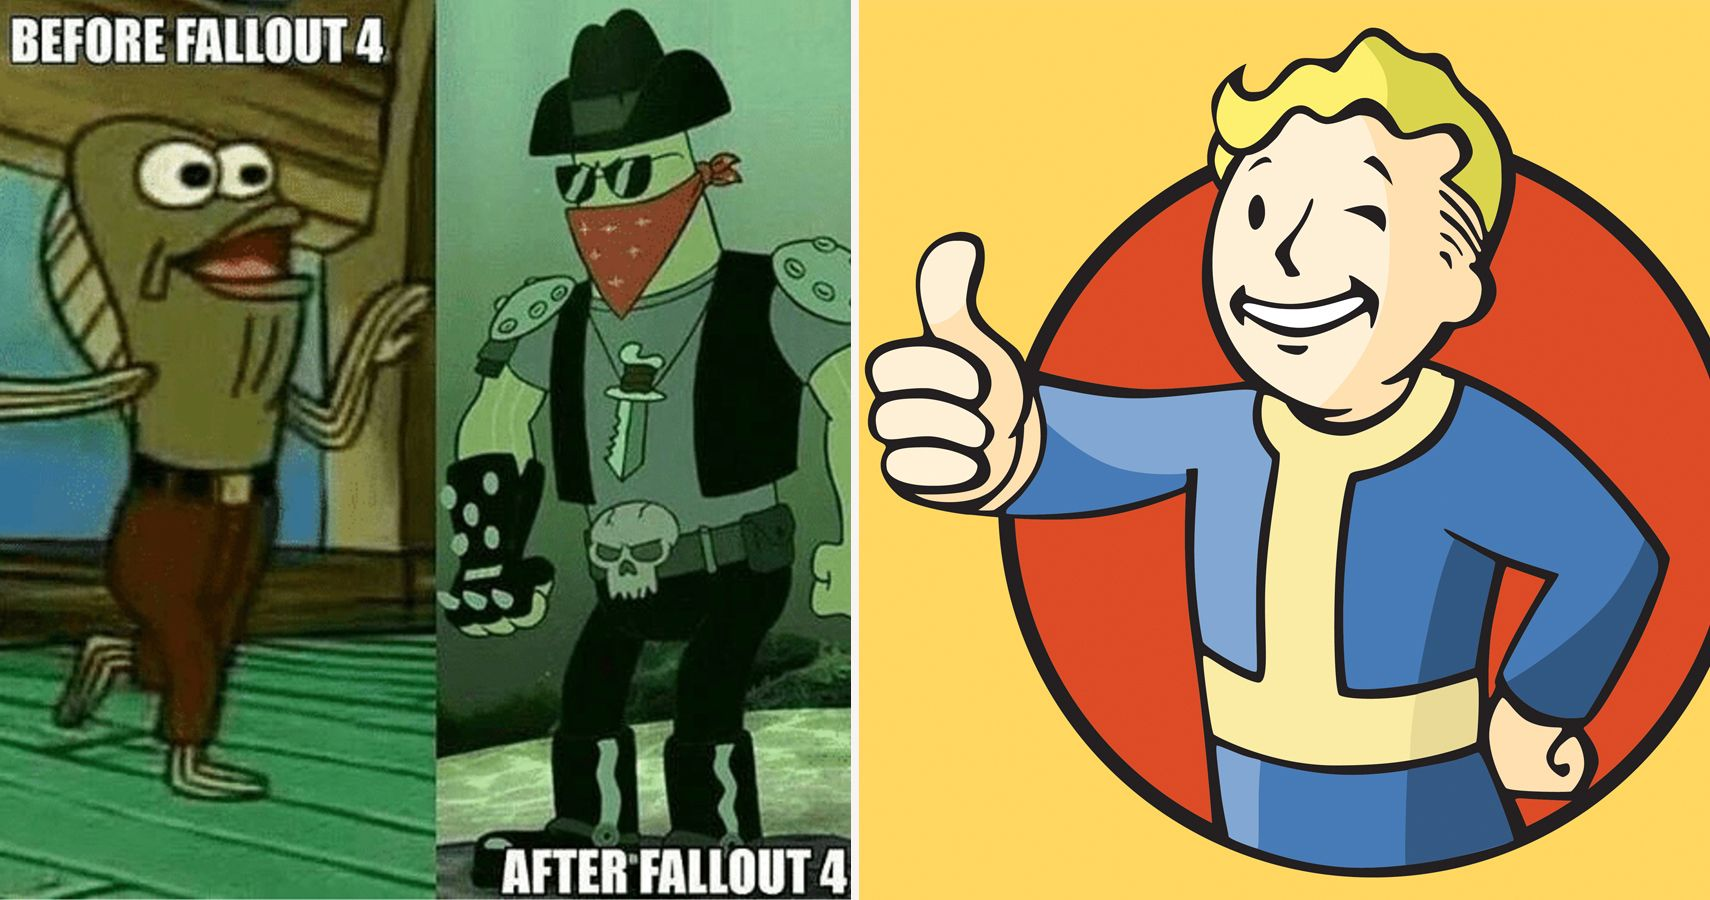 25 Hilarious Fallout 4 Logic Memes That Will Crack Up Any Gamer